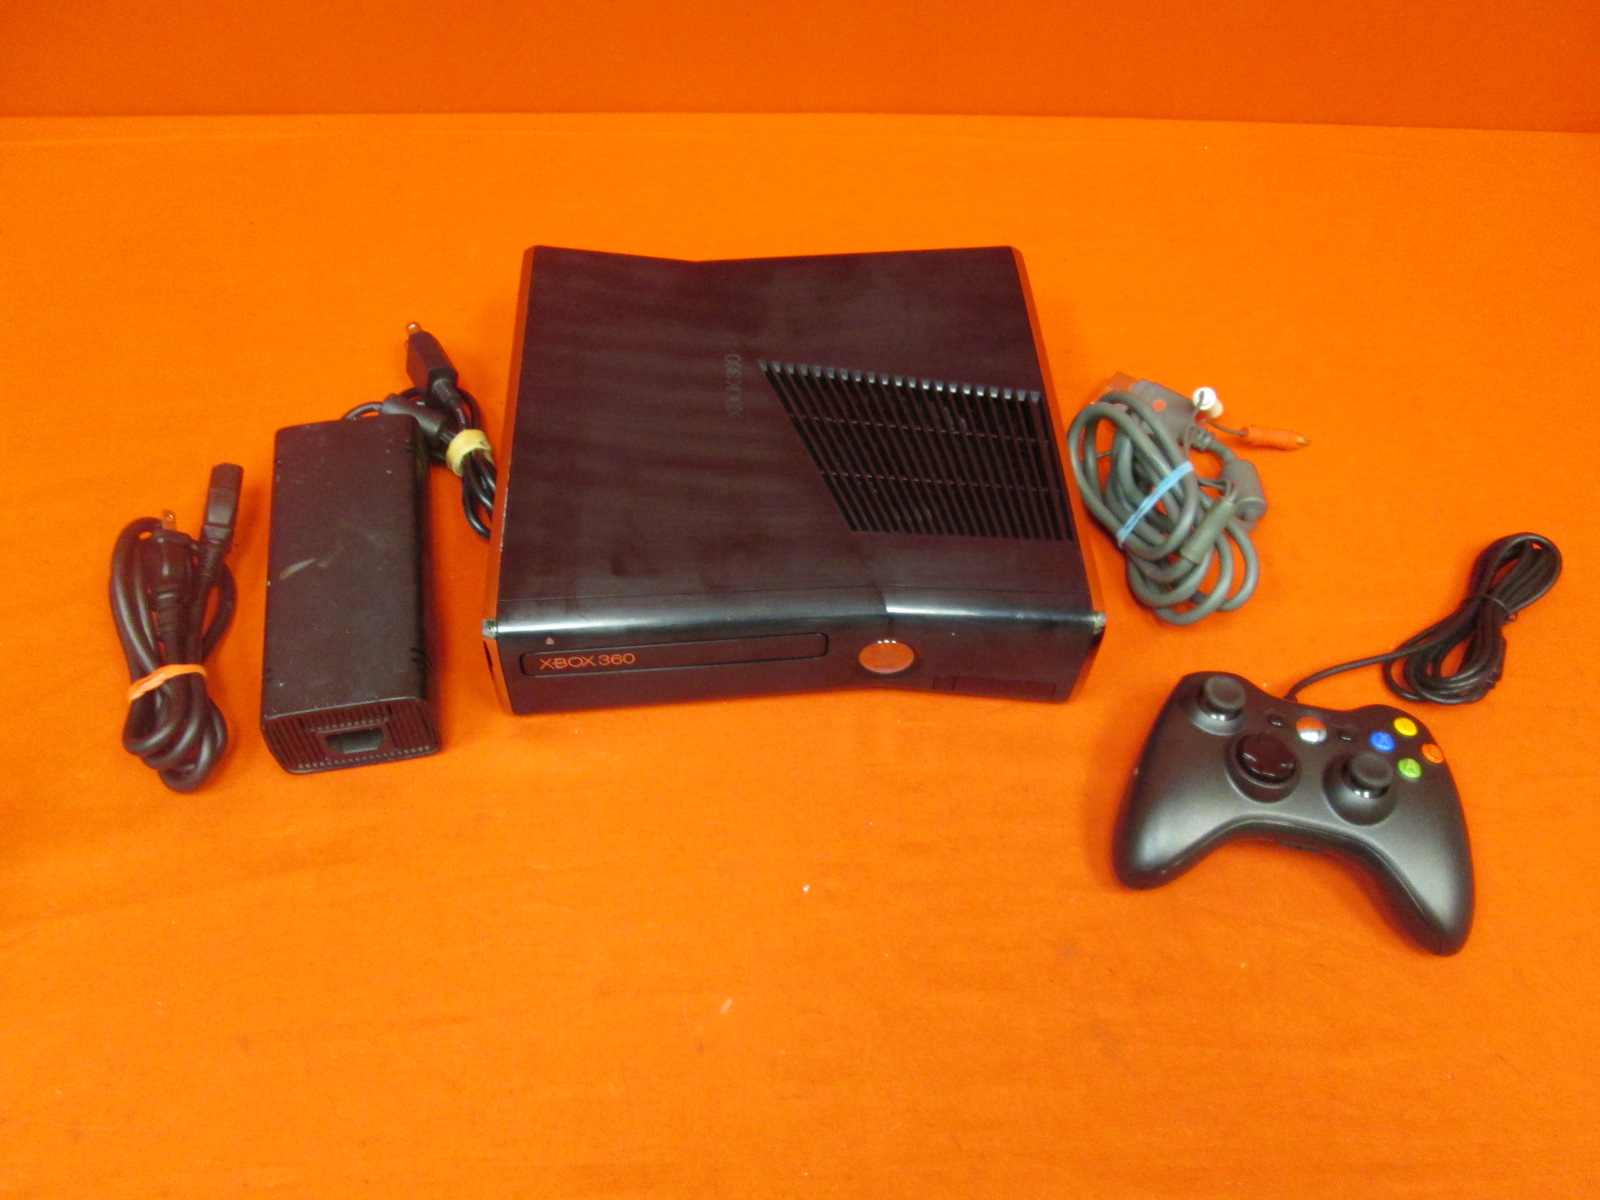 Image 0 of Microsoft Xbox 360 S 120GB Video Game System With Controller